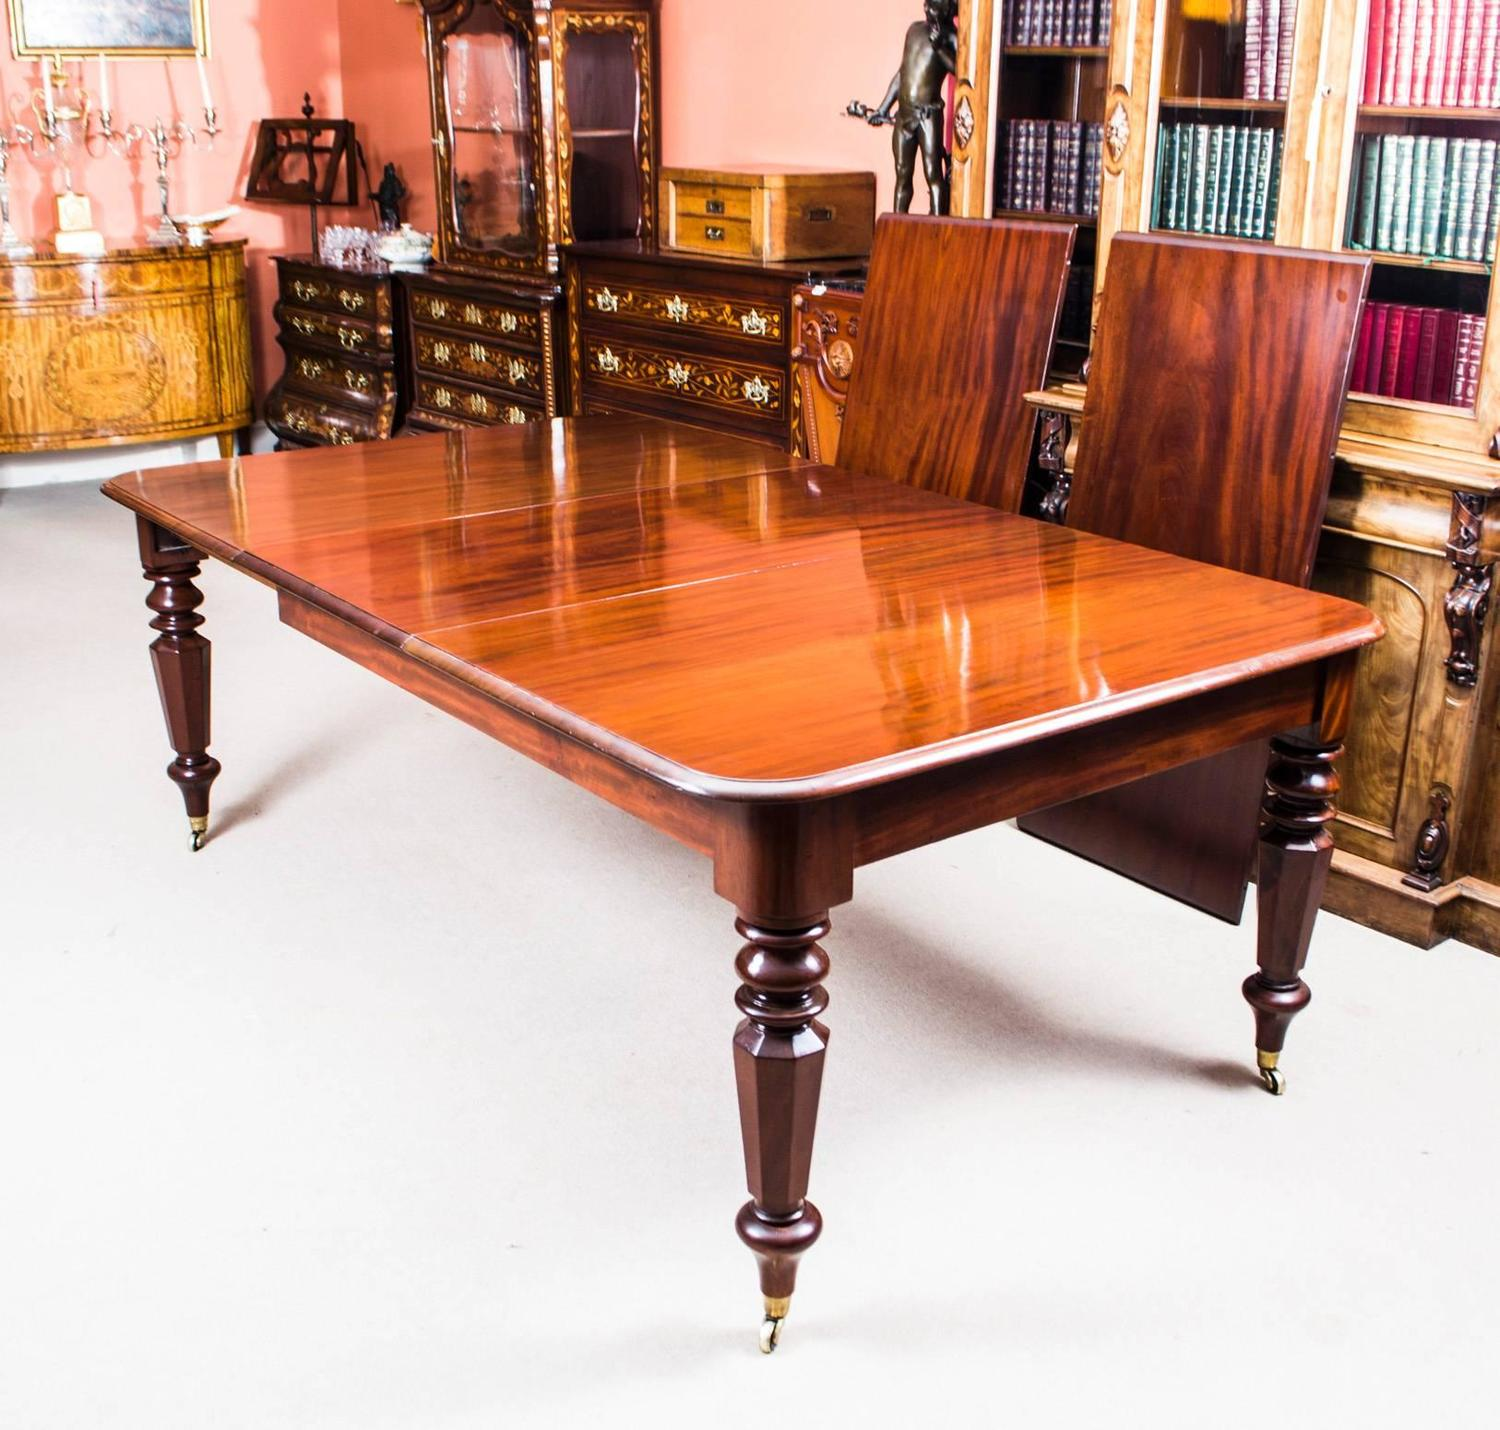 Antique Regency Mahogany Dining Table Manner Of Gillows Circa 1820